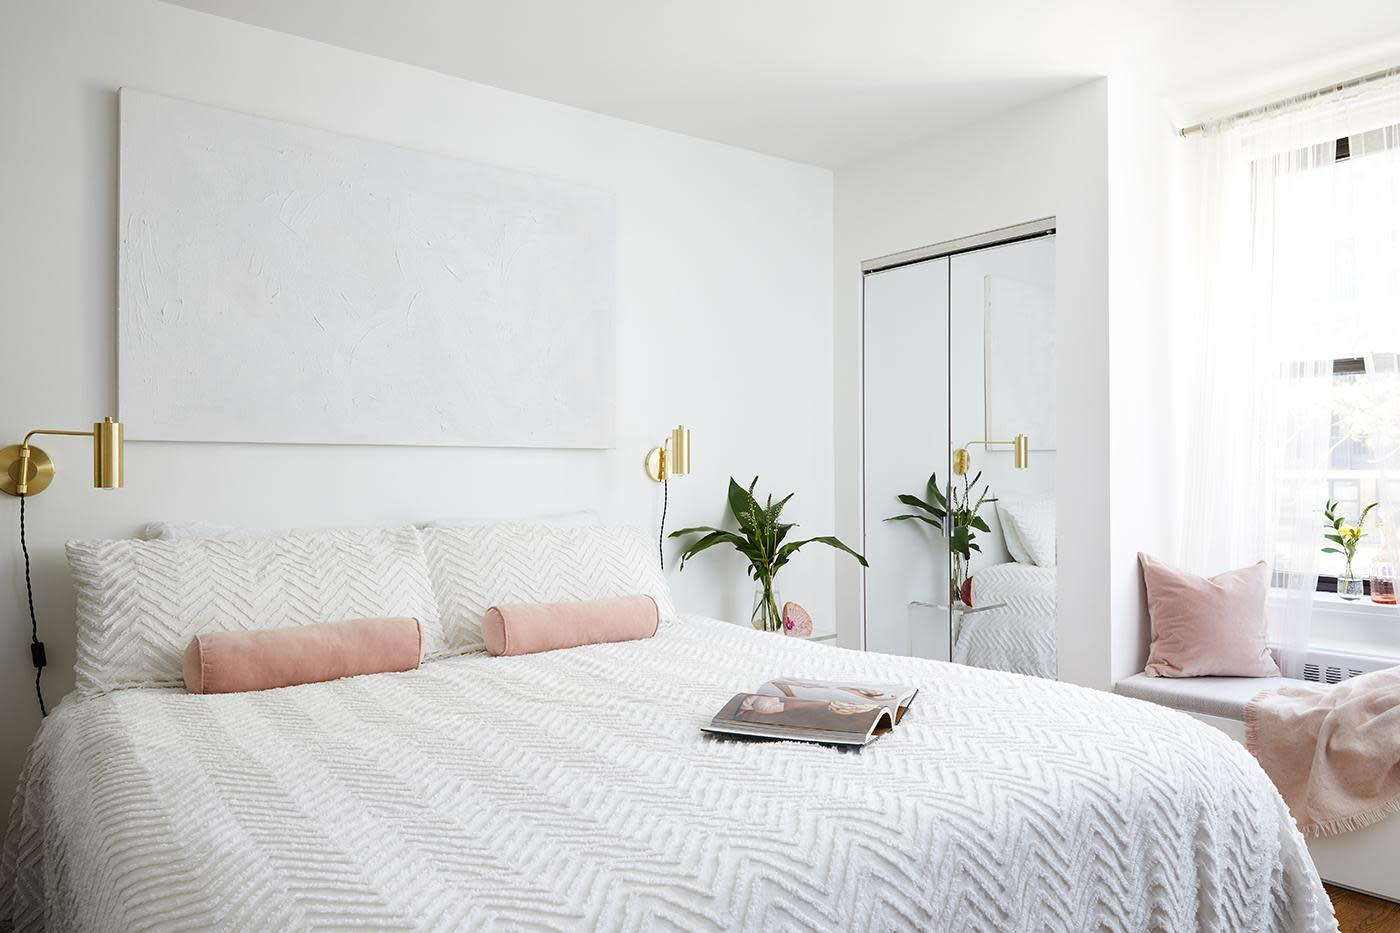 This stylish all-white bedroom makeover combines little luxuries and minimalist decor to create the ultimate bedroom retreat. See inside this dreamy space.